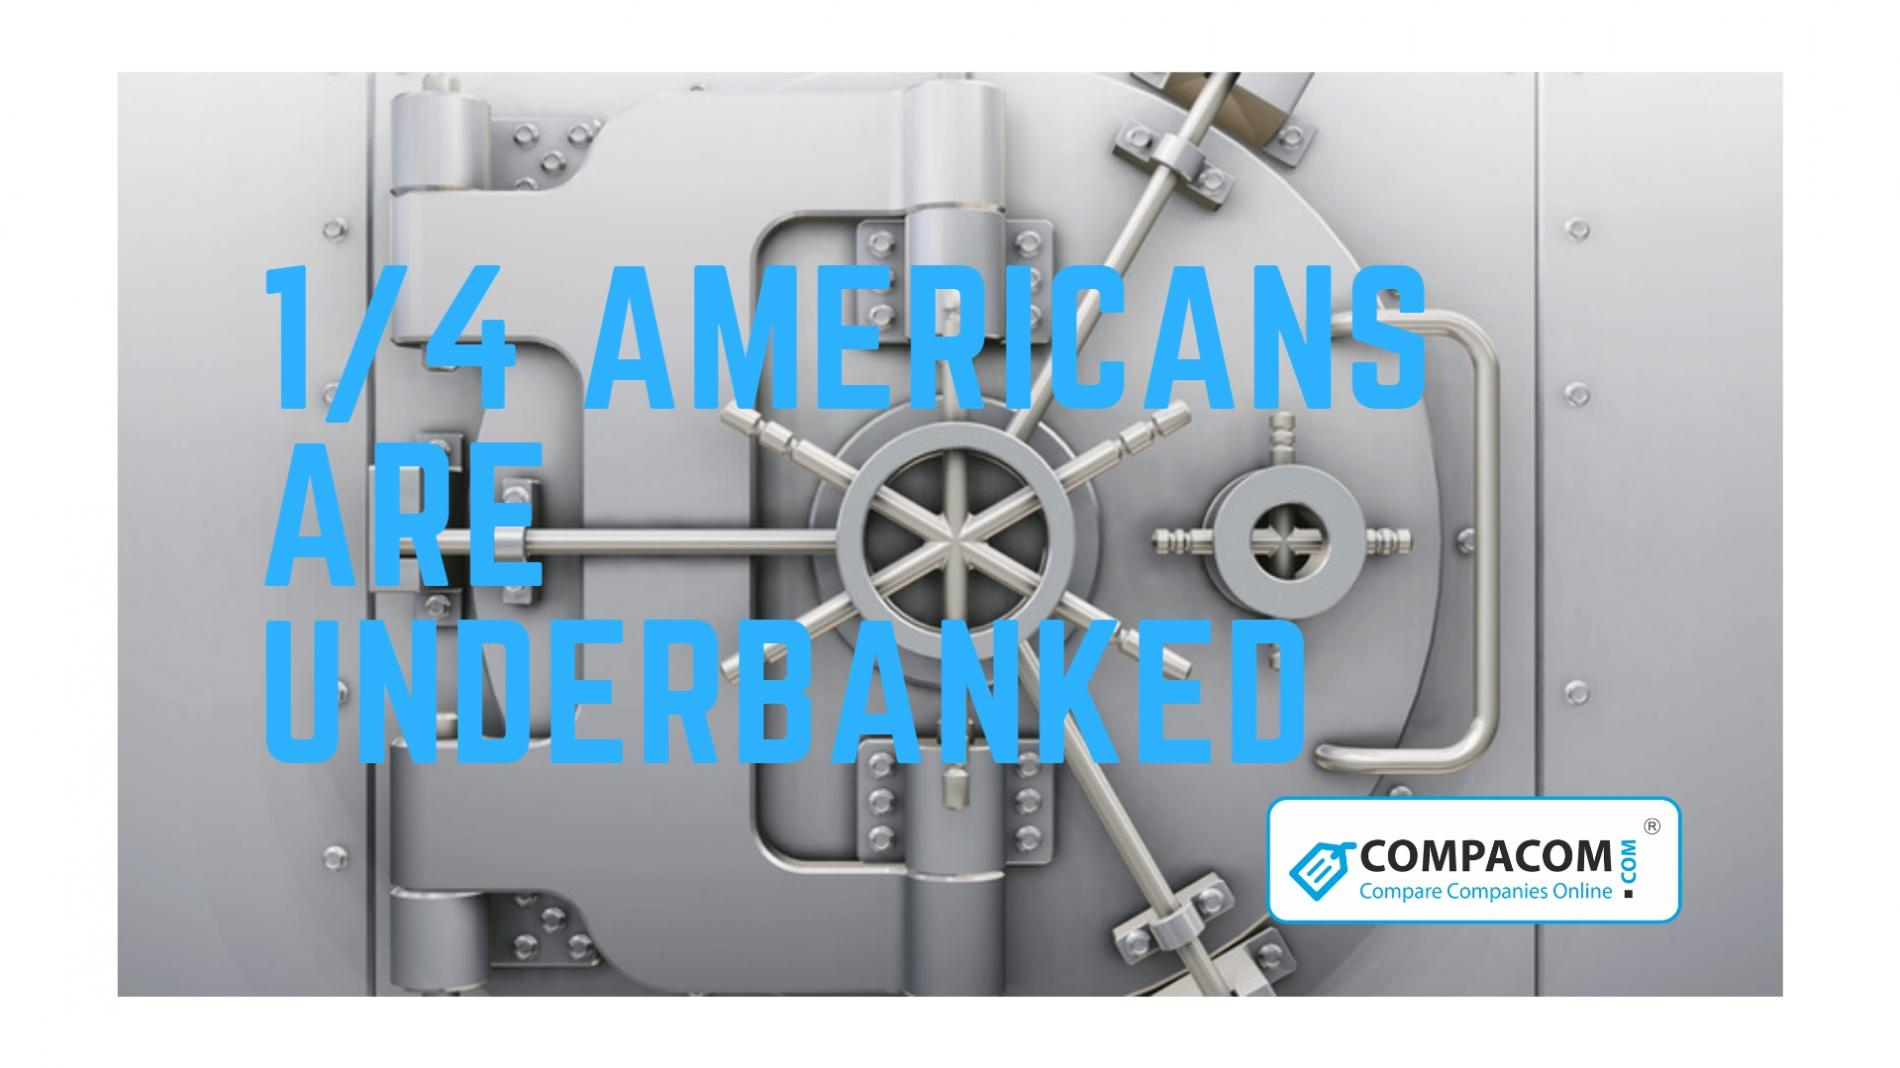 One out of four Americans is underbanked